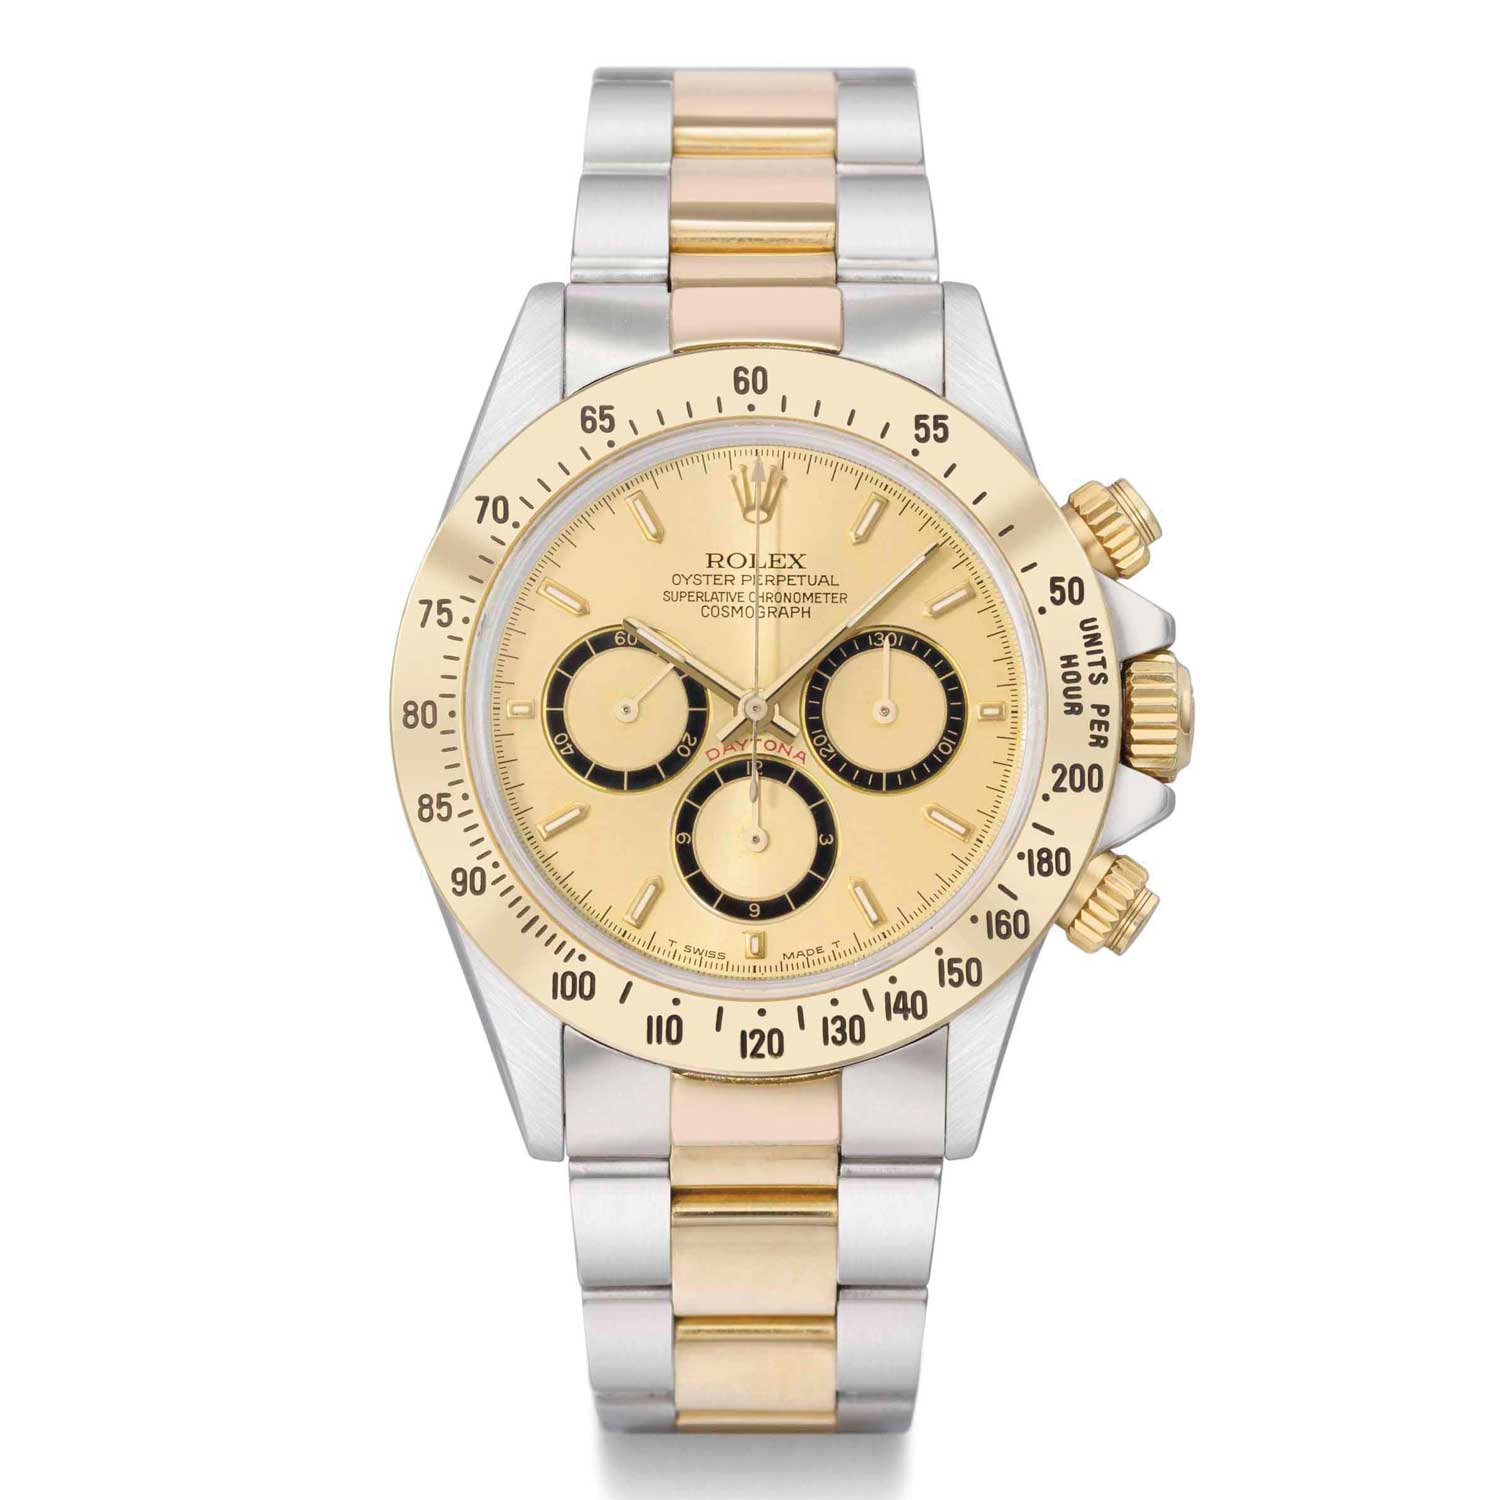 A rare vintage ref. 16523 two-tone Daytona sold by Christie's. Vintage two-tone Rolexes are seeing a growth in interest